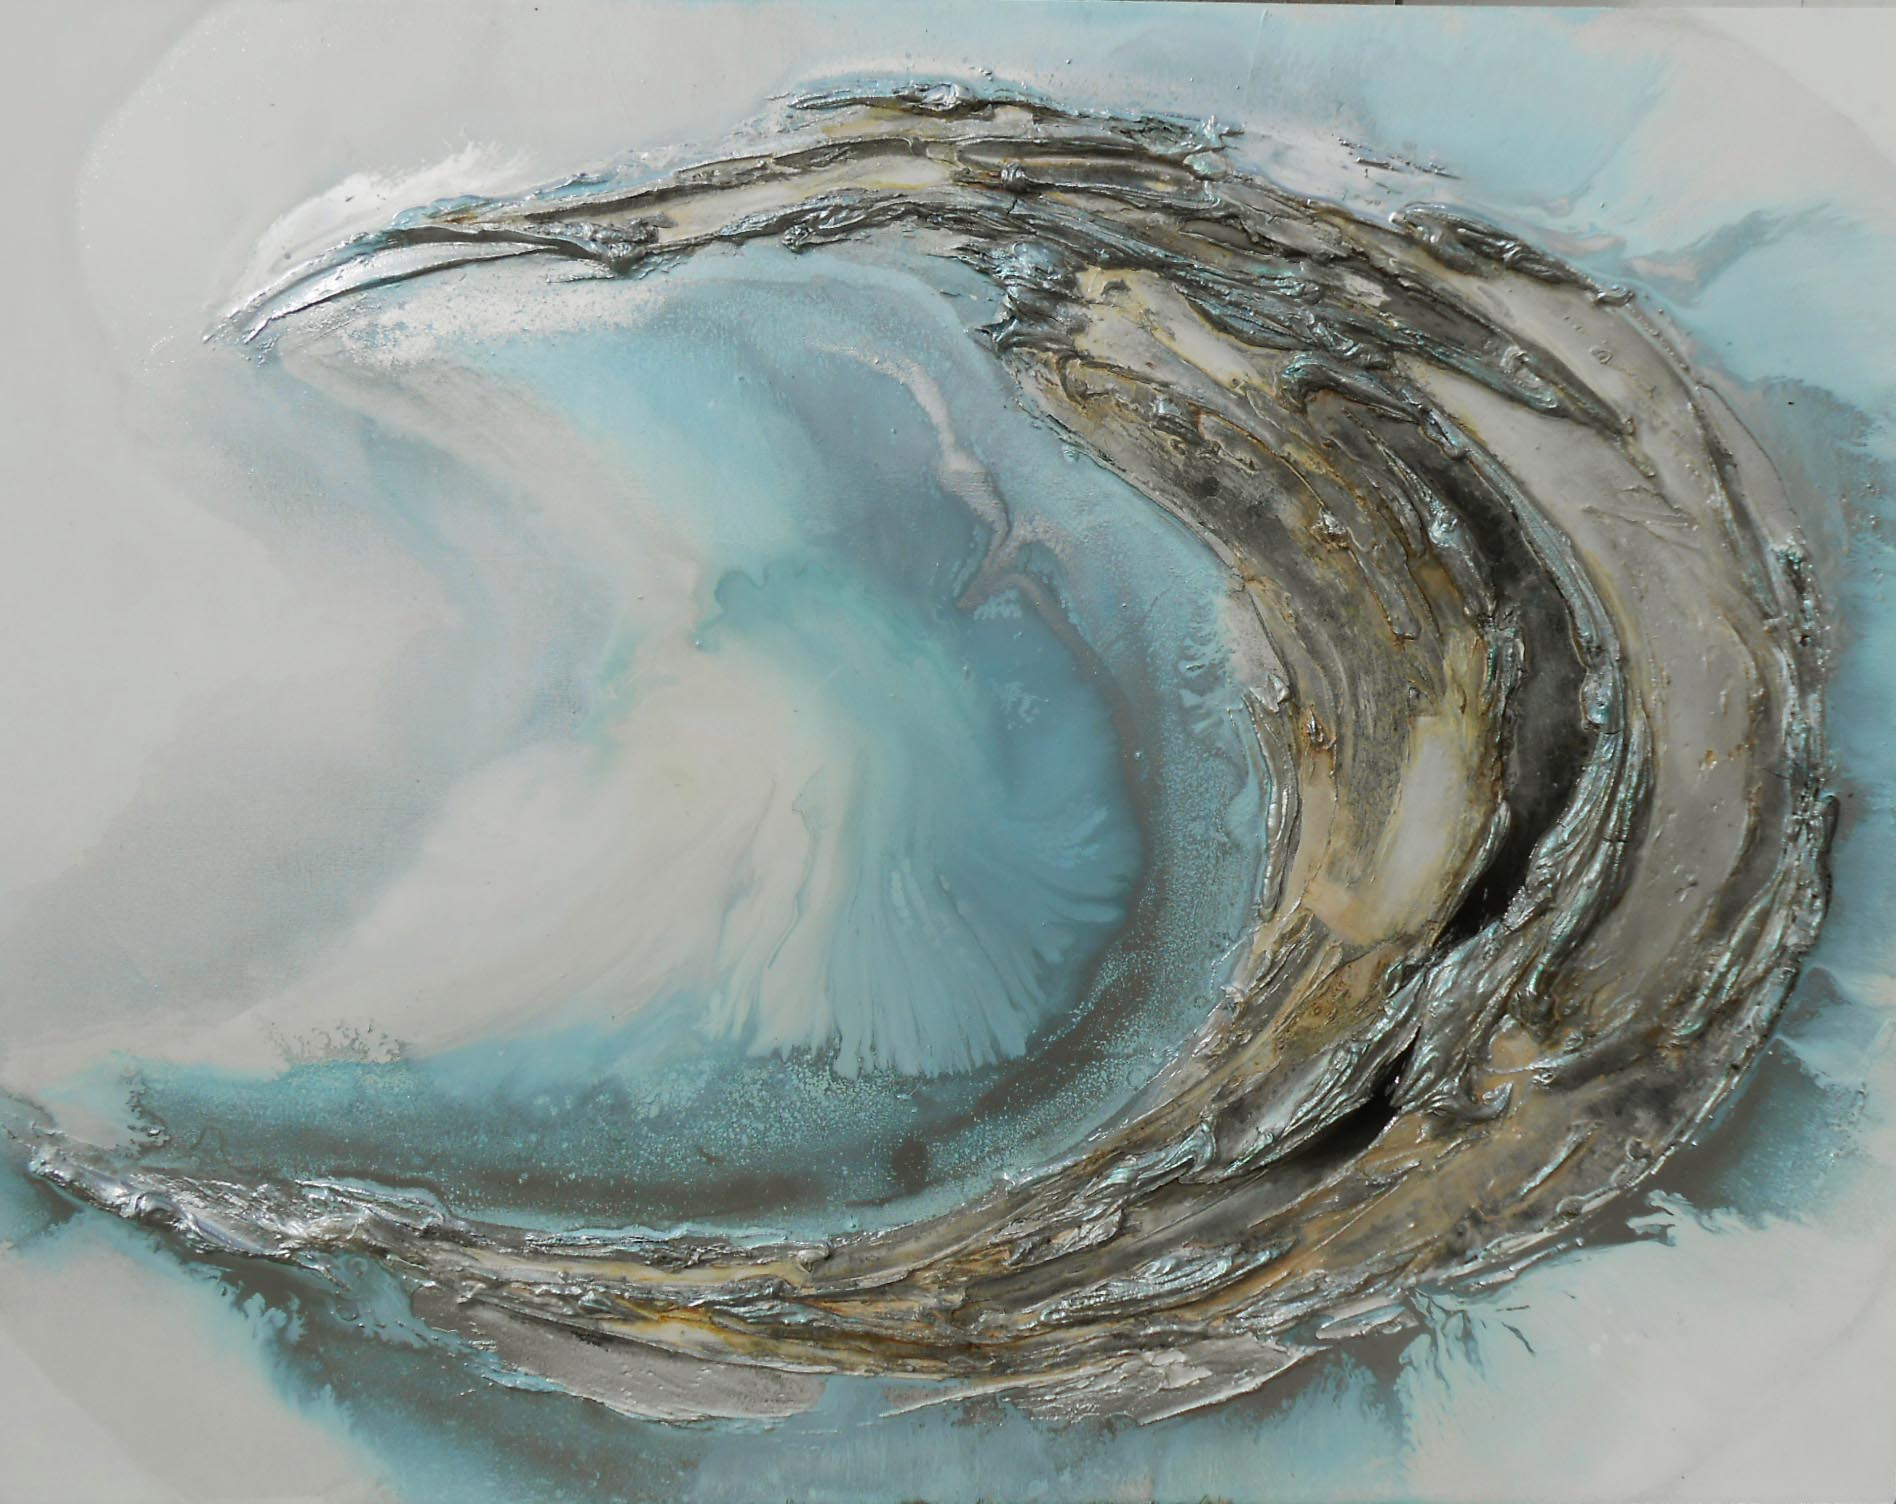 Vicky Sanders Oyster Series - Blue Oyster #3